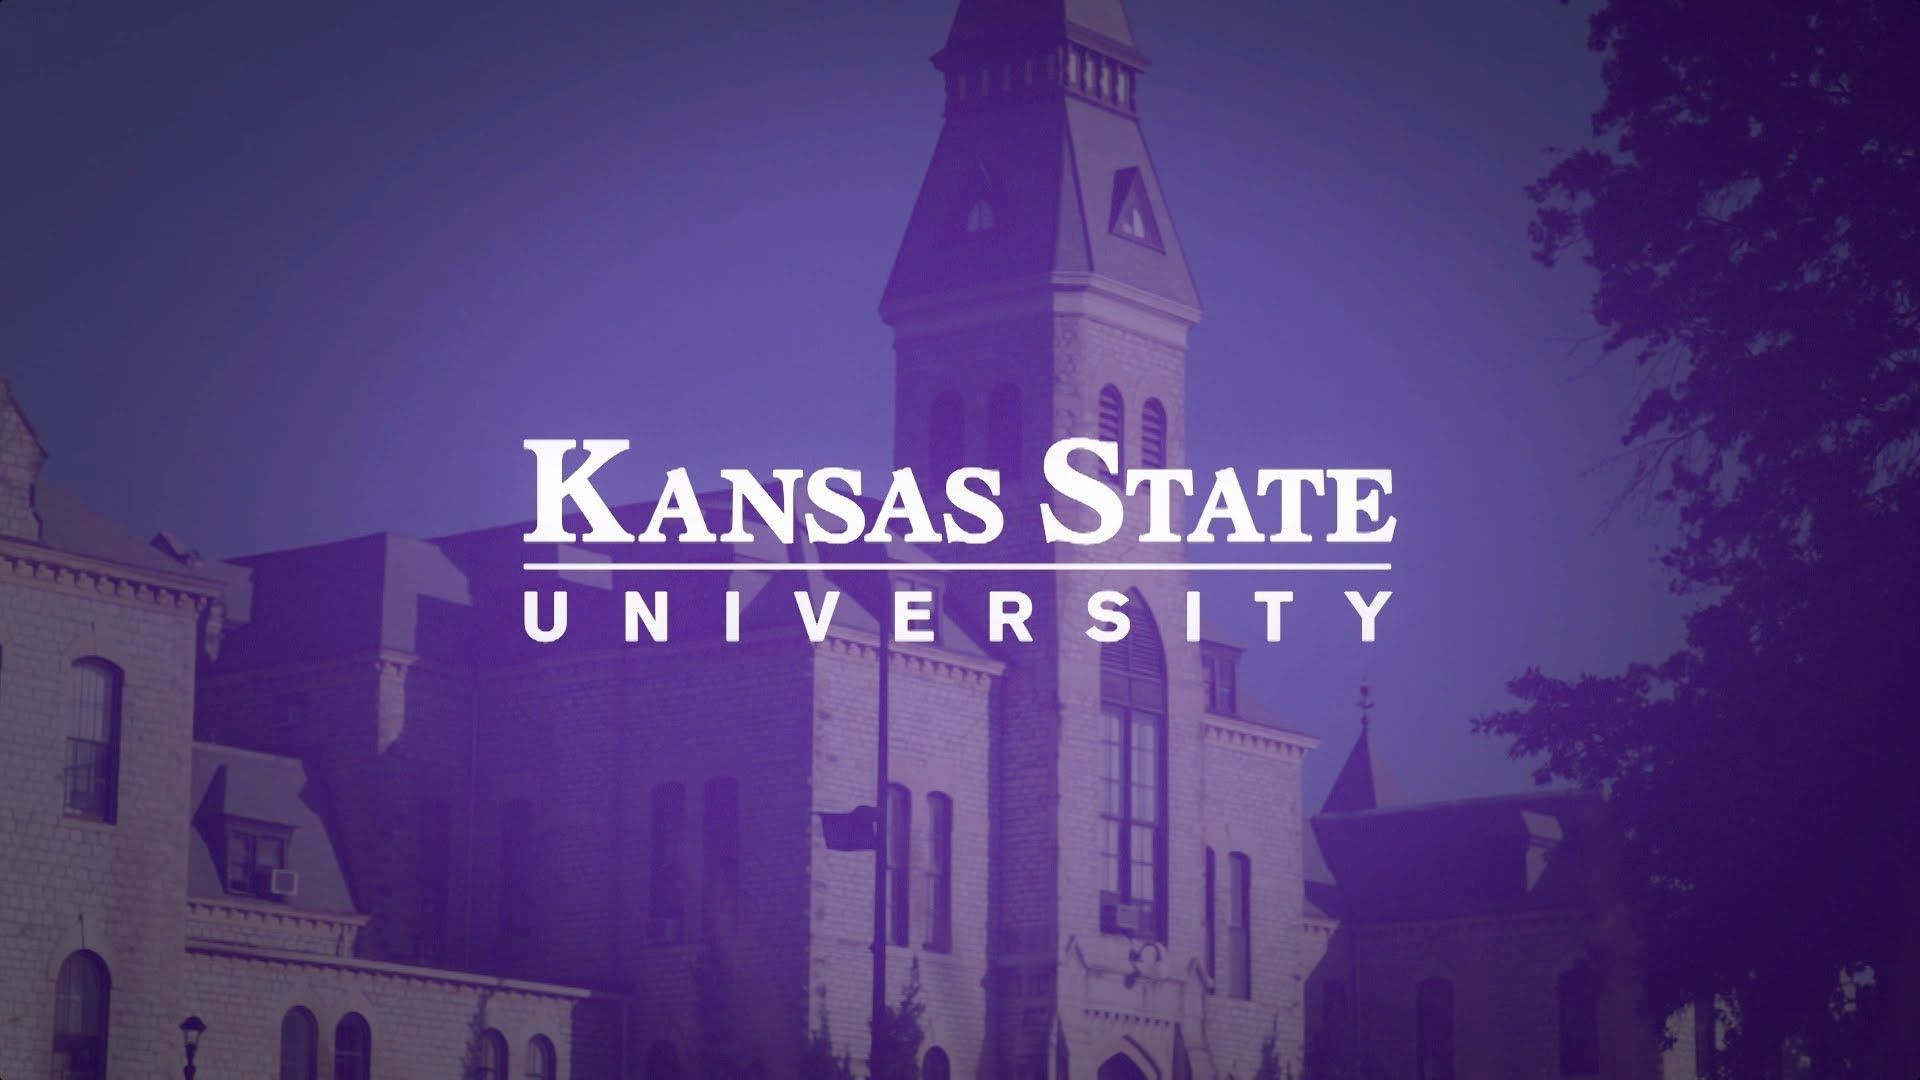 1920x1080 Become a part of Kansas State University - YouTube